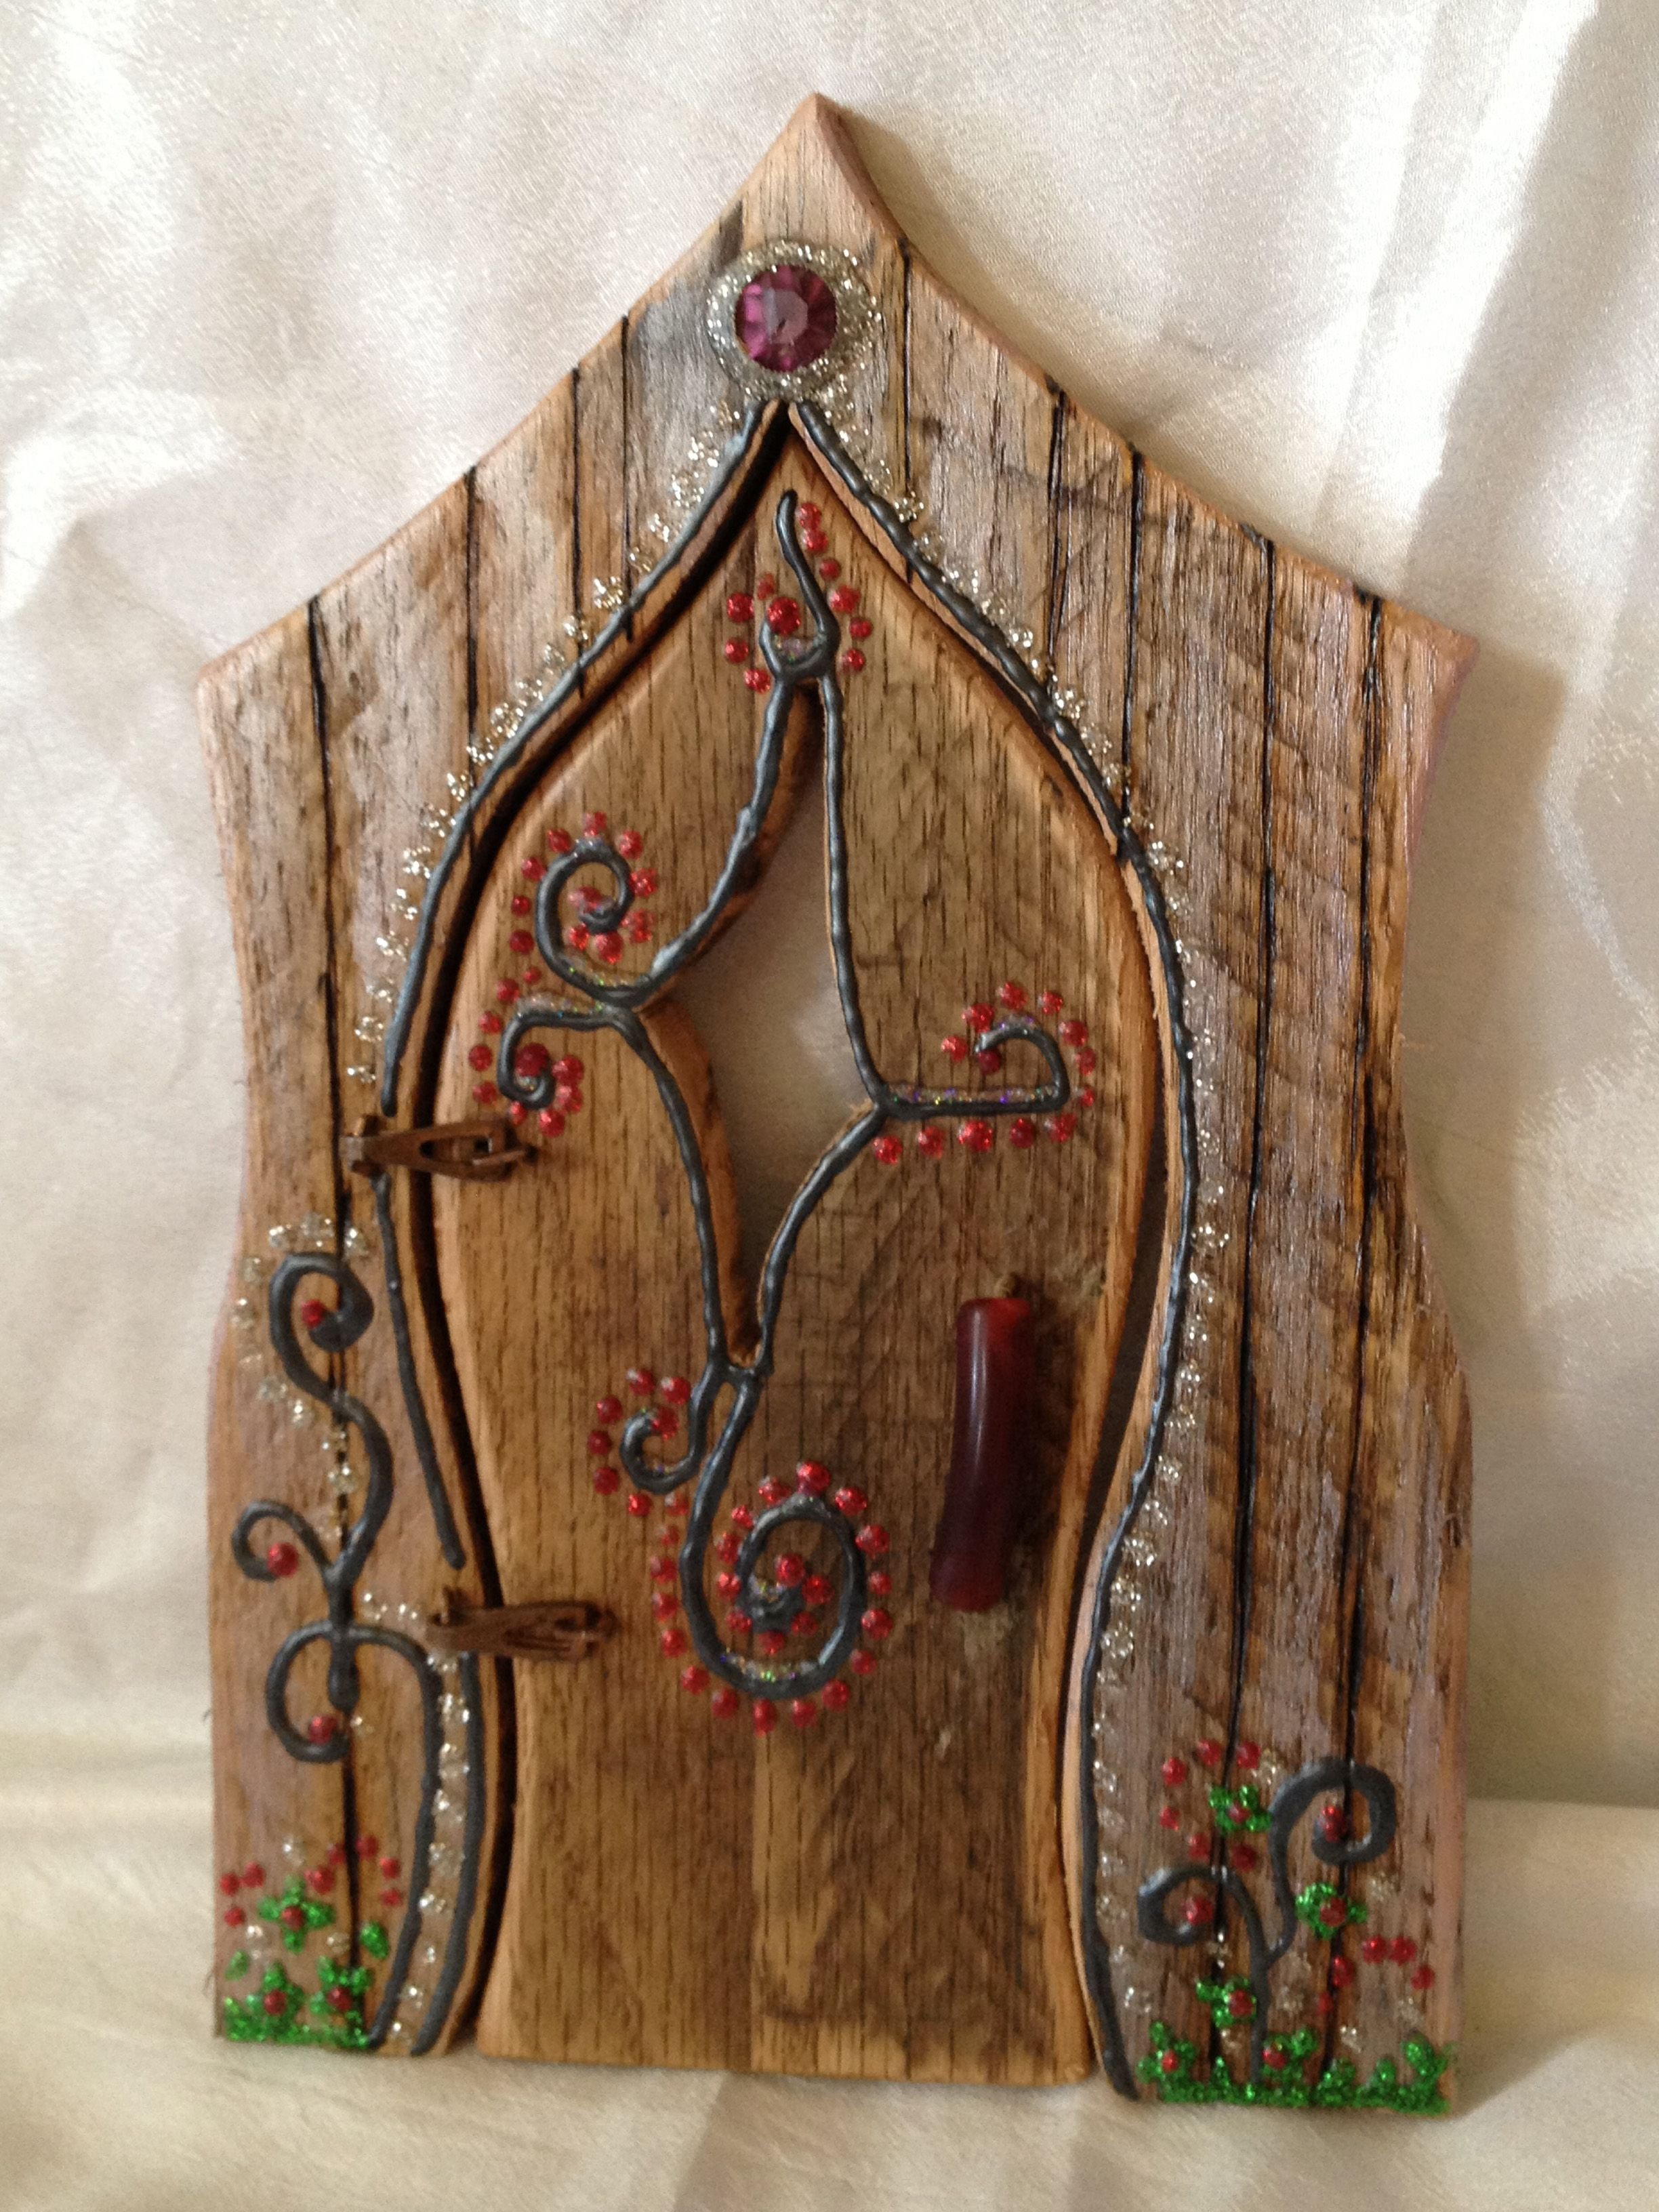 Fairy door hand painted decorated diy craft mini for Miniature fairy garden doors